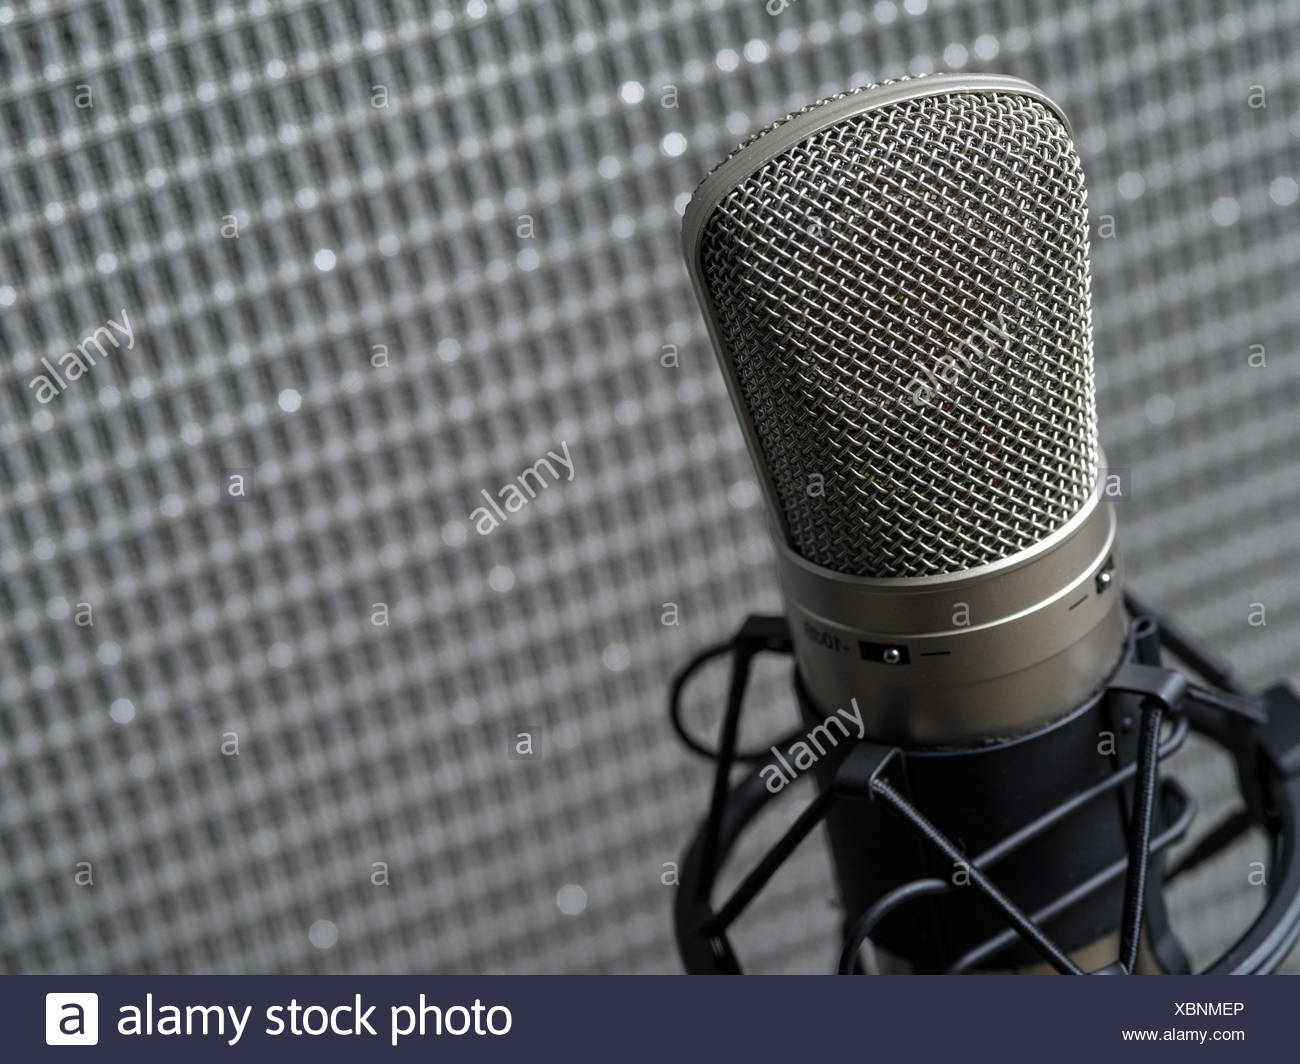 Condenser microphone and guitar amplifier - Stock Image